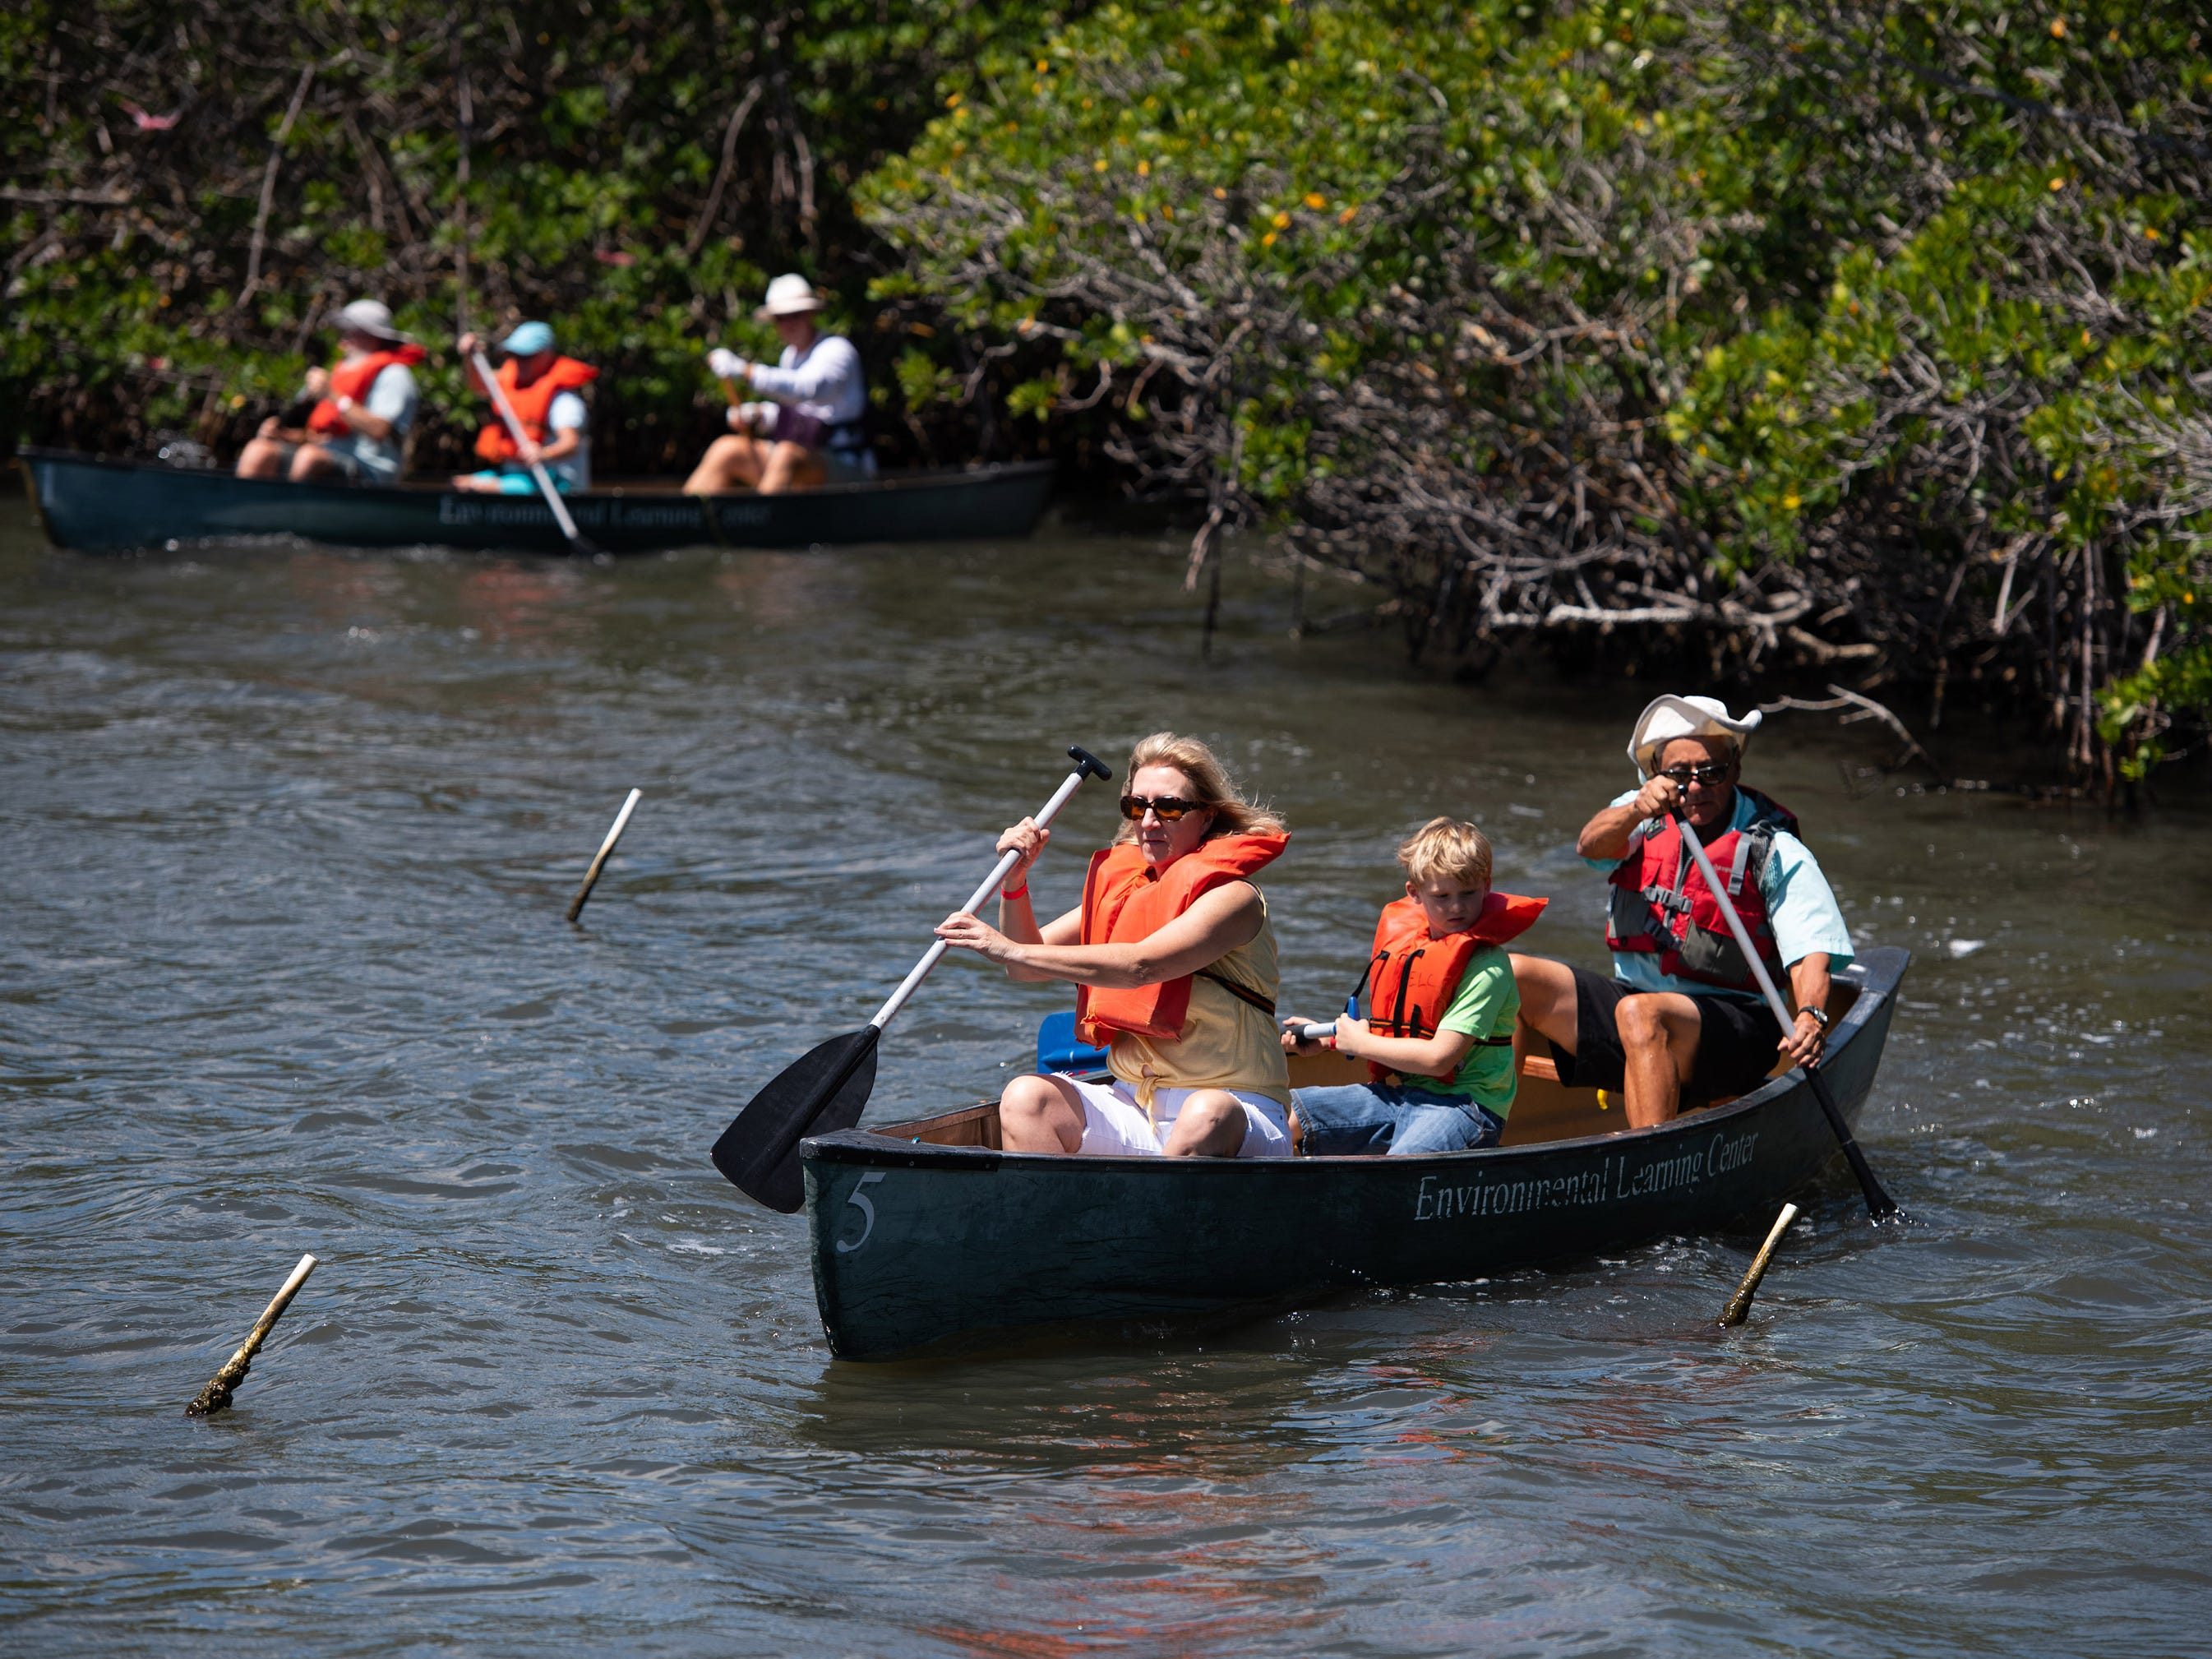 """Cathy Conn (left) and her grandchild Syler Jaques (center), 6, both of Sebastian, tour the mangroves along the Indian River Lagoon by canoe with volunteer guide Mike Murphy (right) during the Environmental Learning Center's first Citizen Science Day on Saturday, April 13, 2019, at The Environmental Learning Center in Wabasso. """"It was awesome,"""" Conn said of the canoe tour. """"Everyone should do it, it was just amazing."""""""